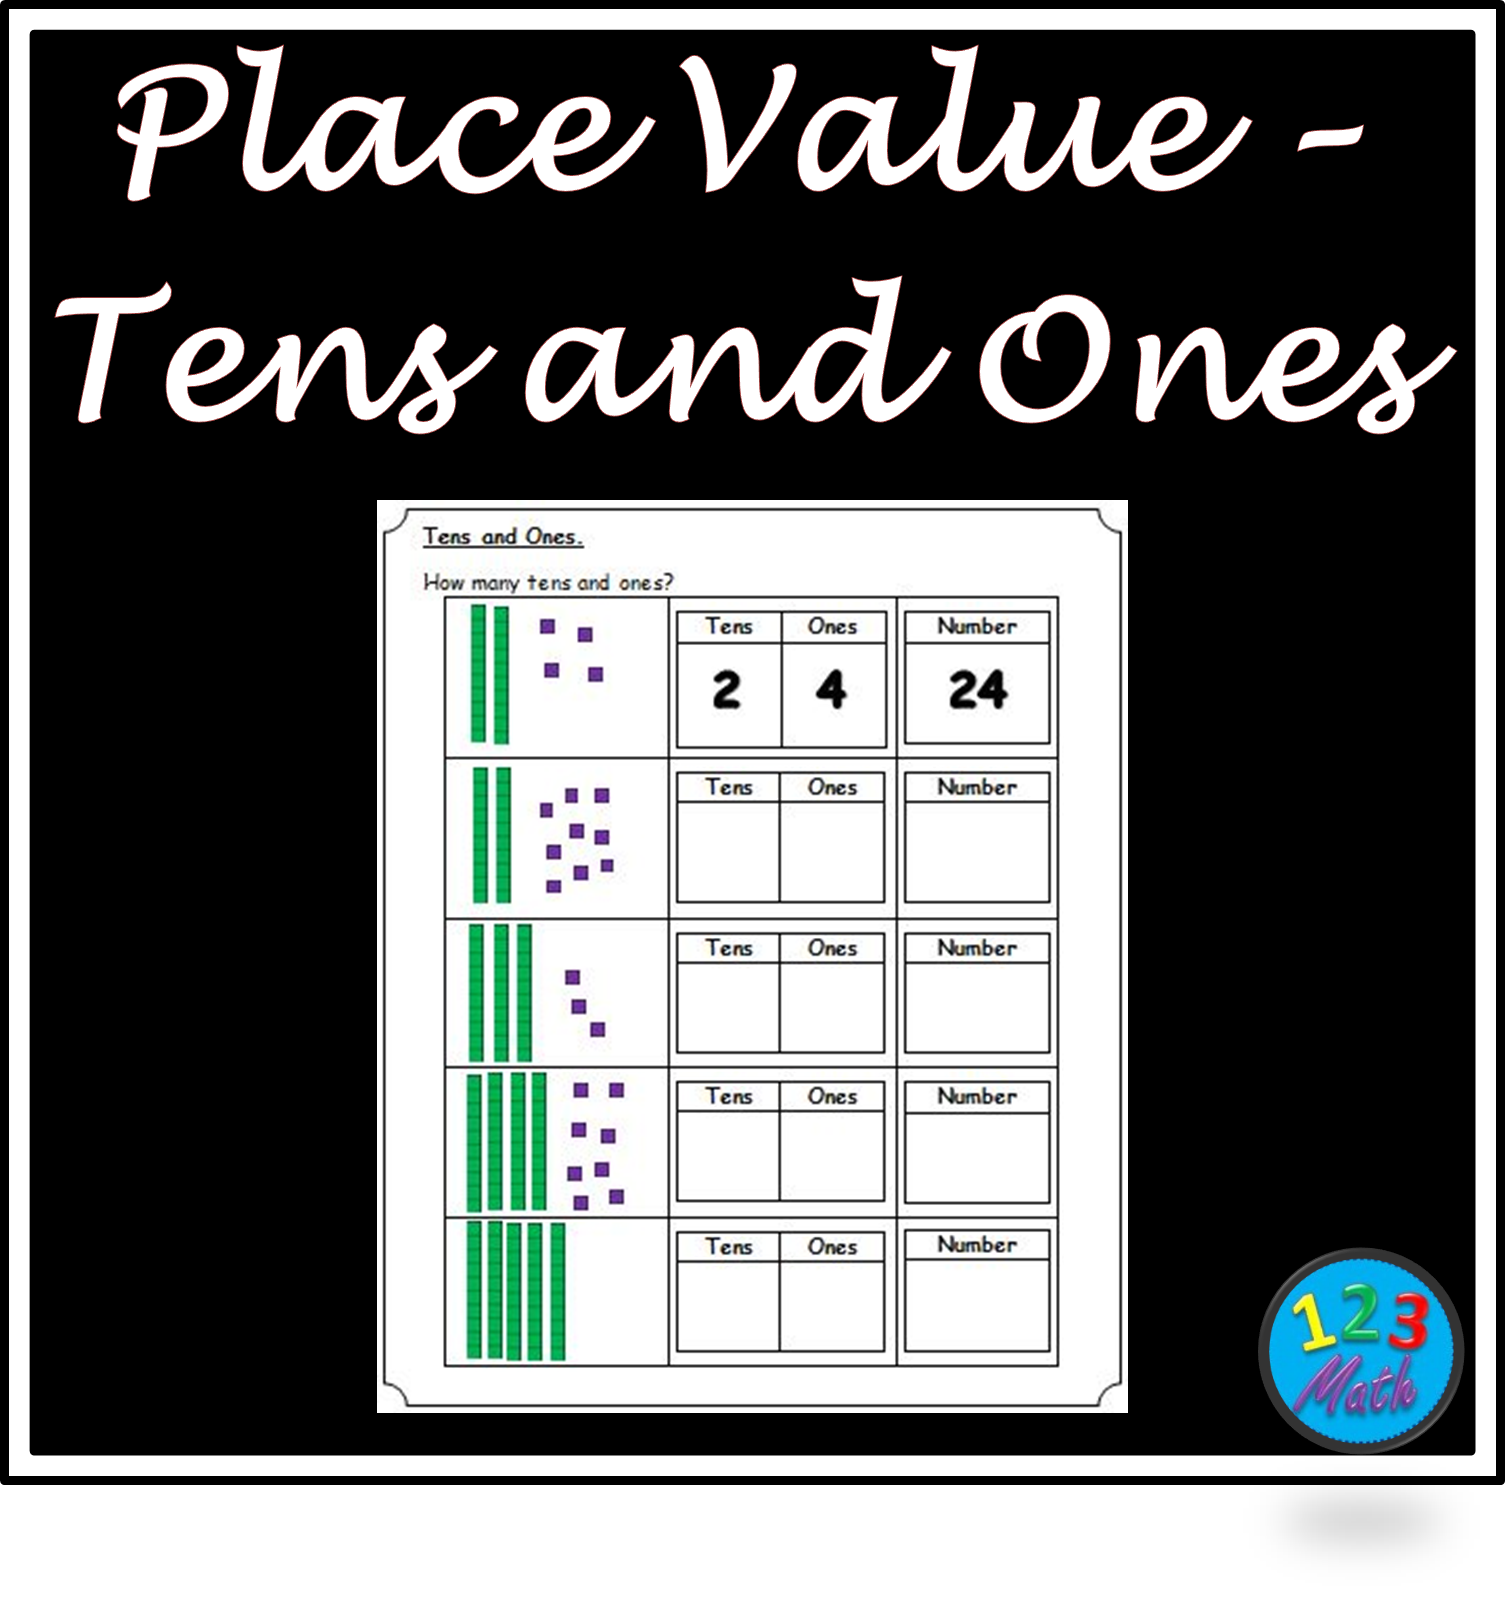 Place Value Tens Ones Worksheets Tens And Ones Worksheets Tens And Ones Place Values [ 1603 x 1508 Pixel ]